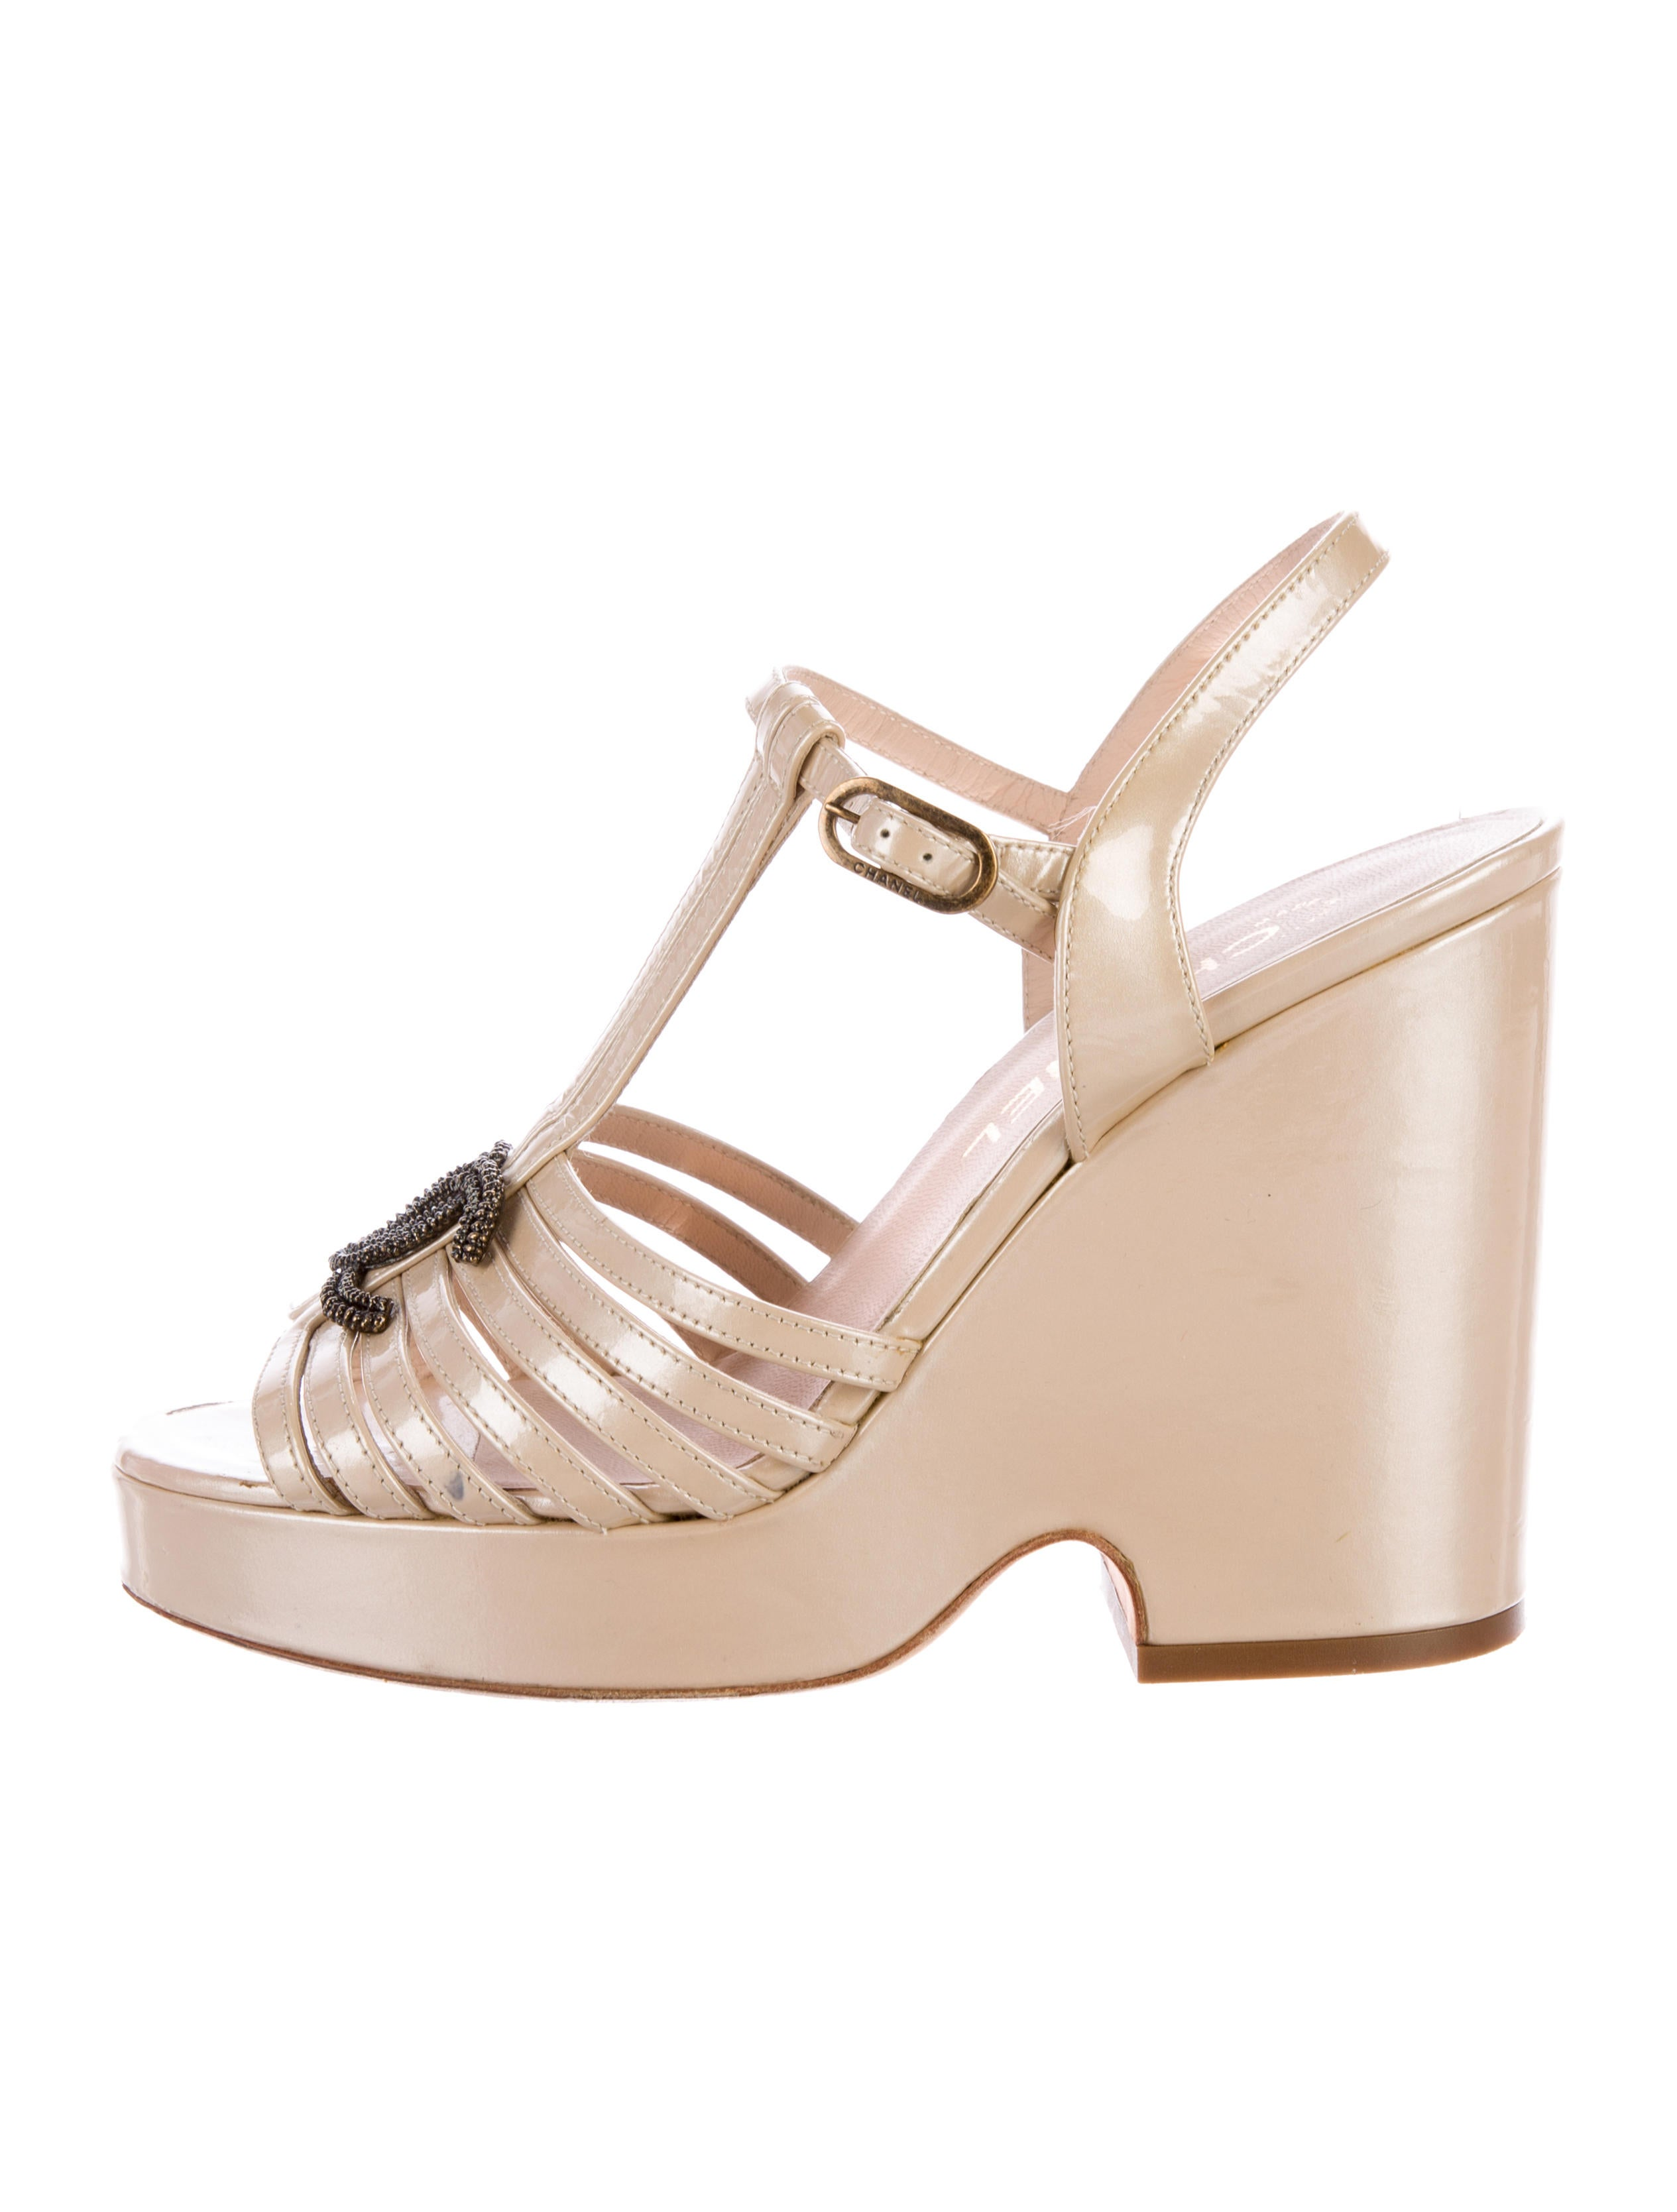 chanel cc platform sandals shoes cha158826 the realreal